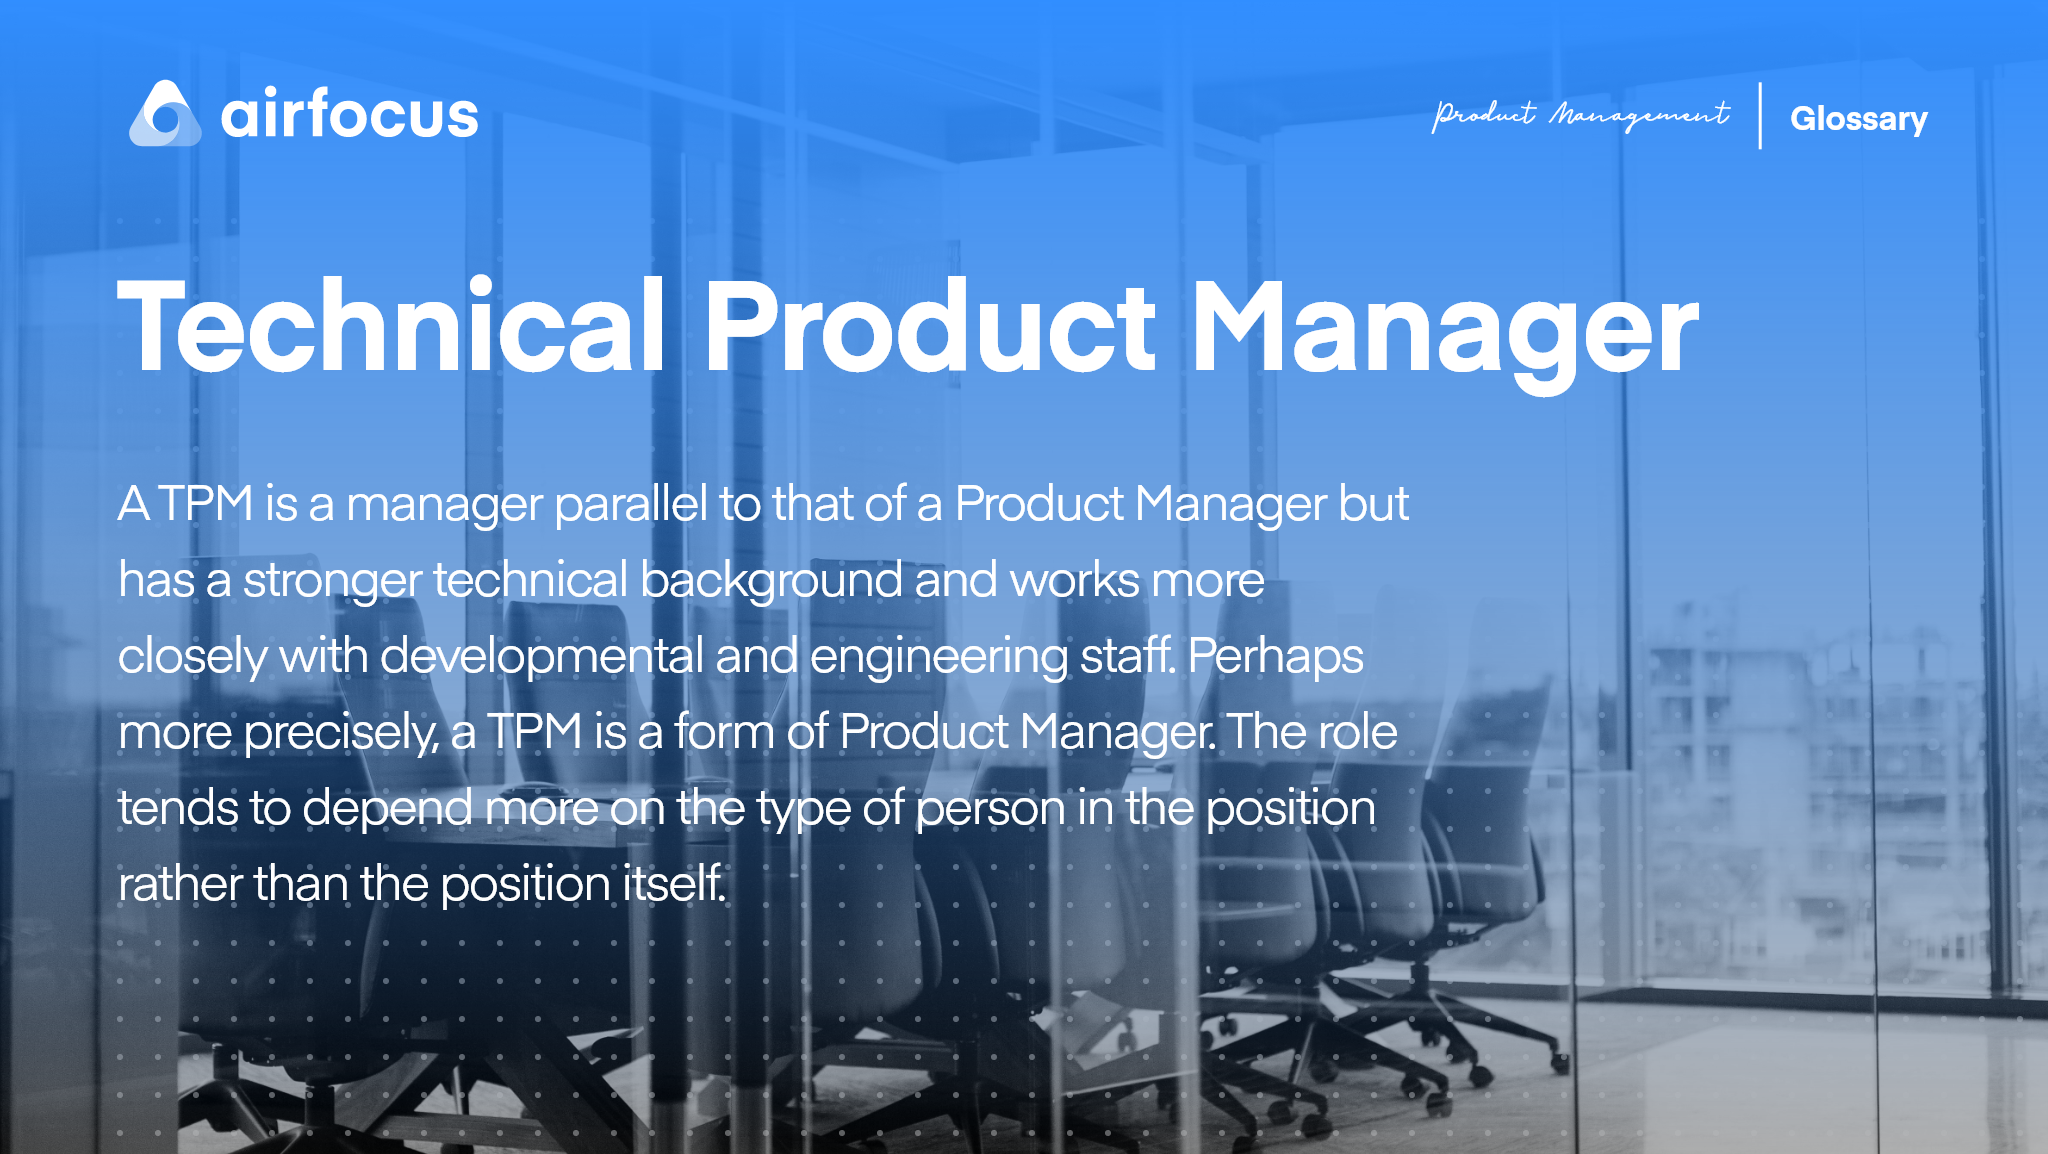 What is a Technical Product Manager?